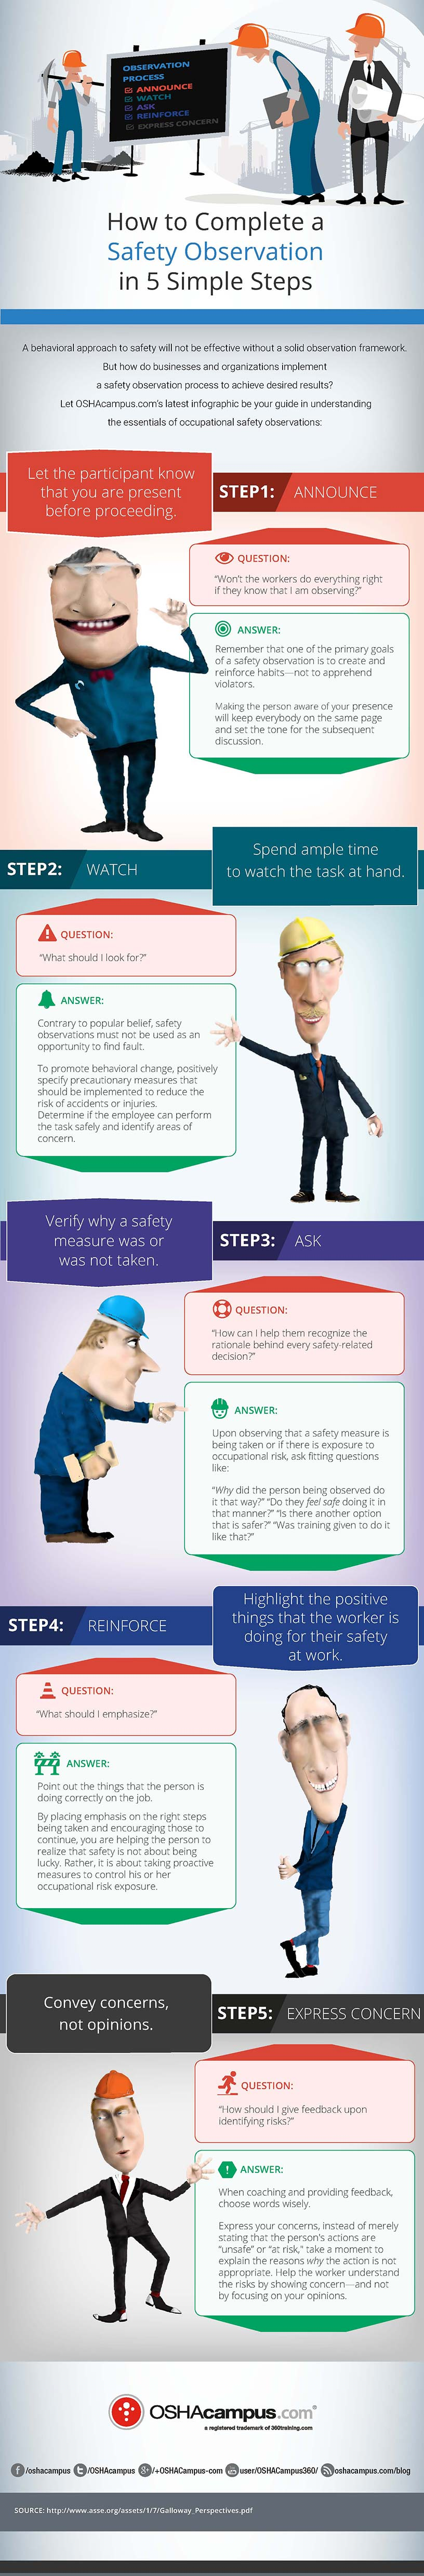 How to Complete a Safety Observation Online safety